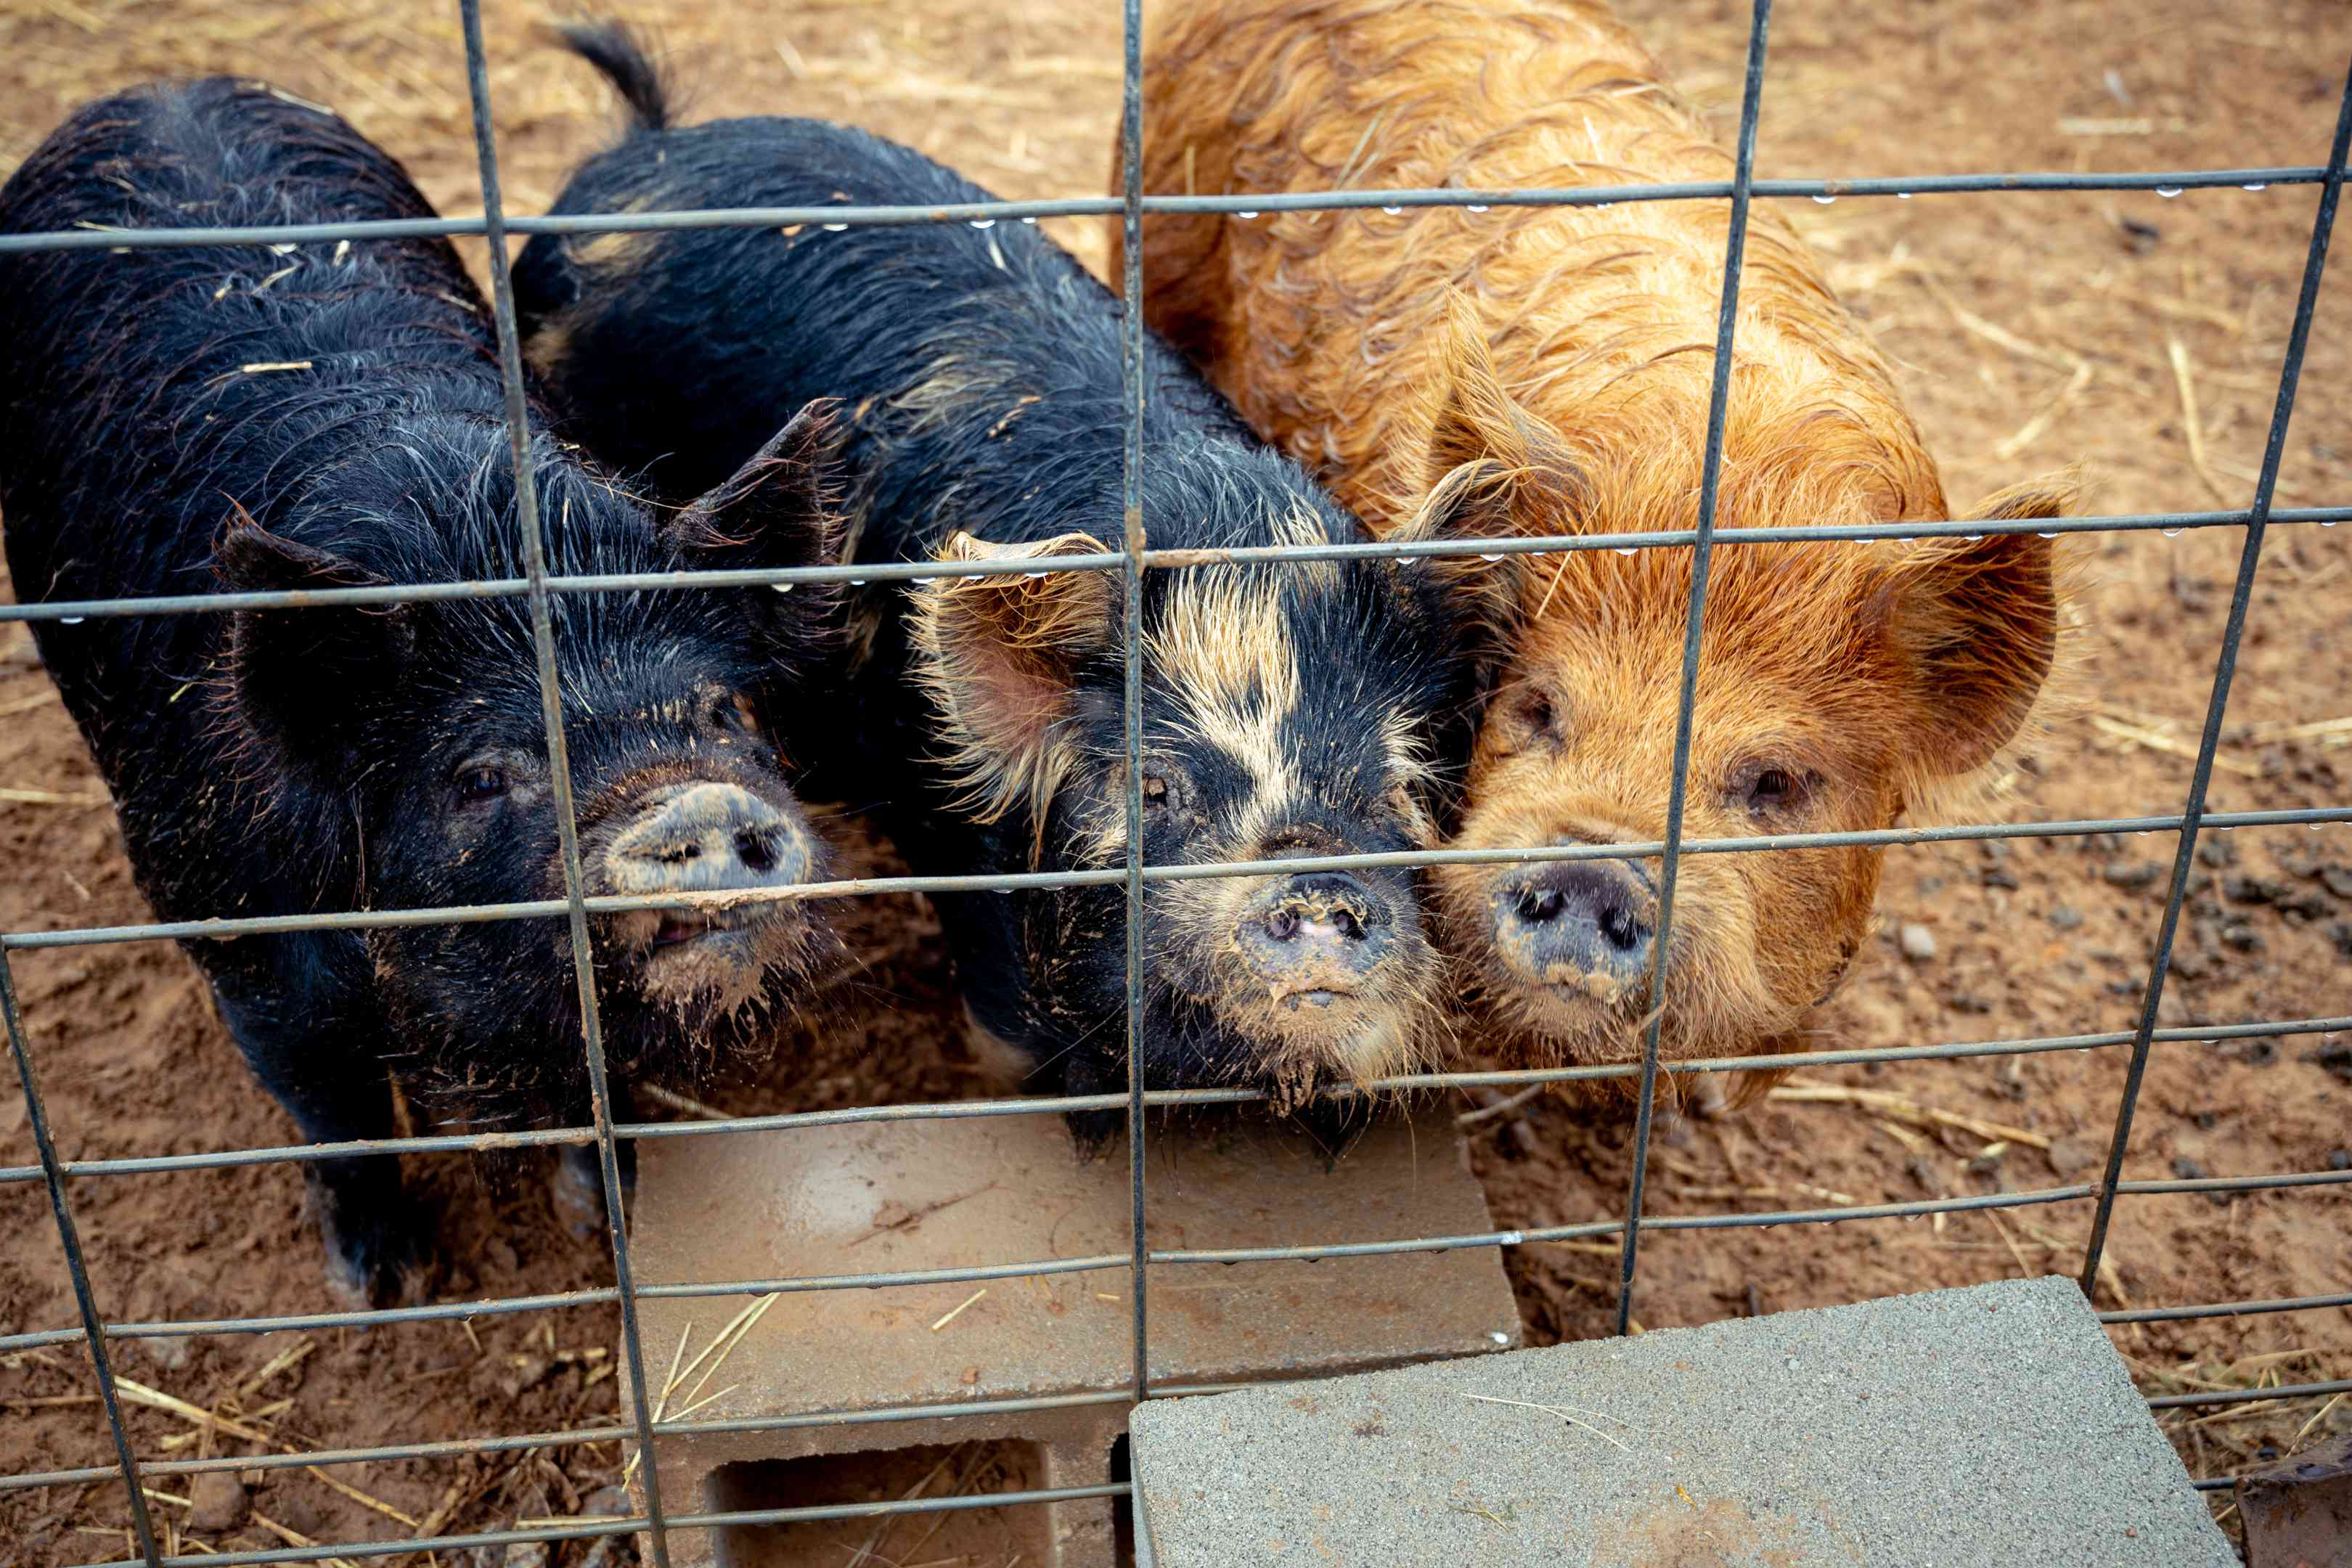 three scruffy pigs line up in front of wire fence awaiting treats